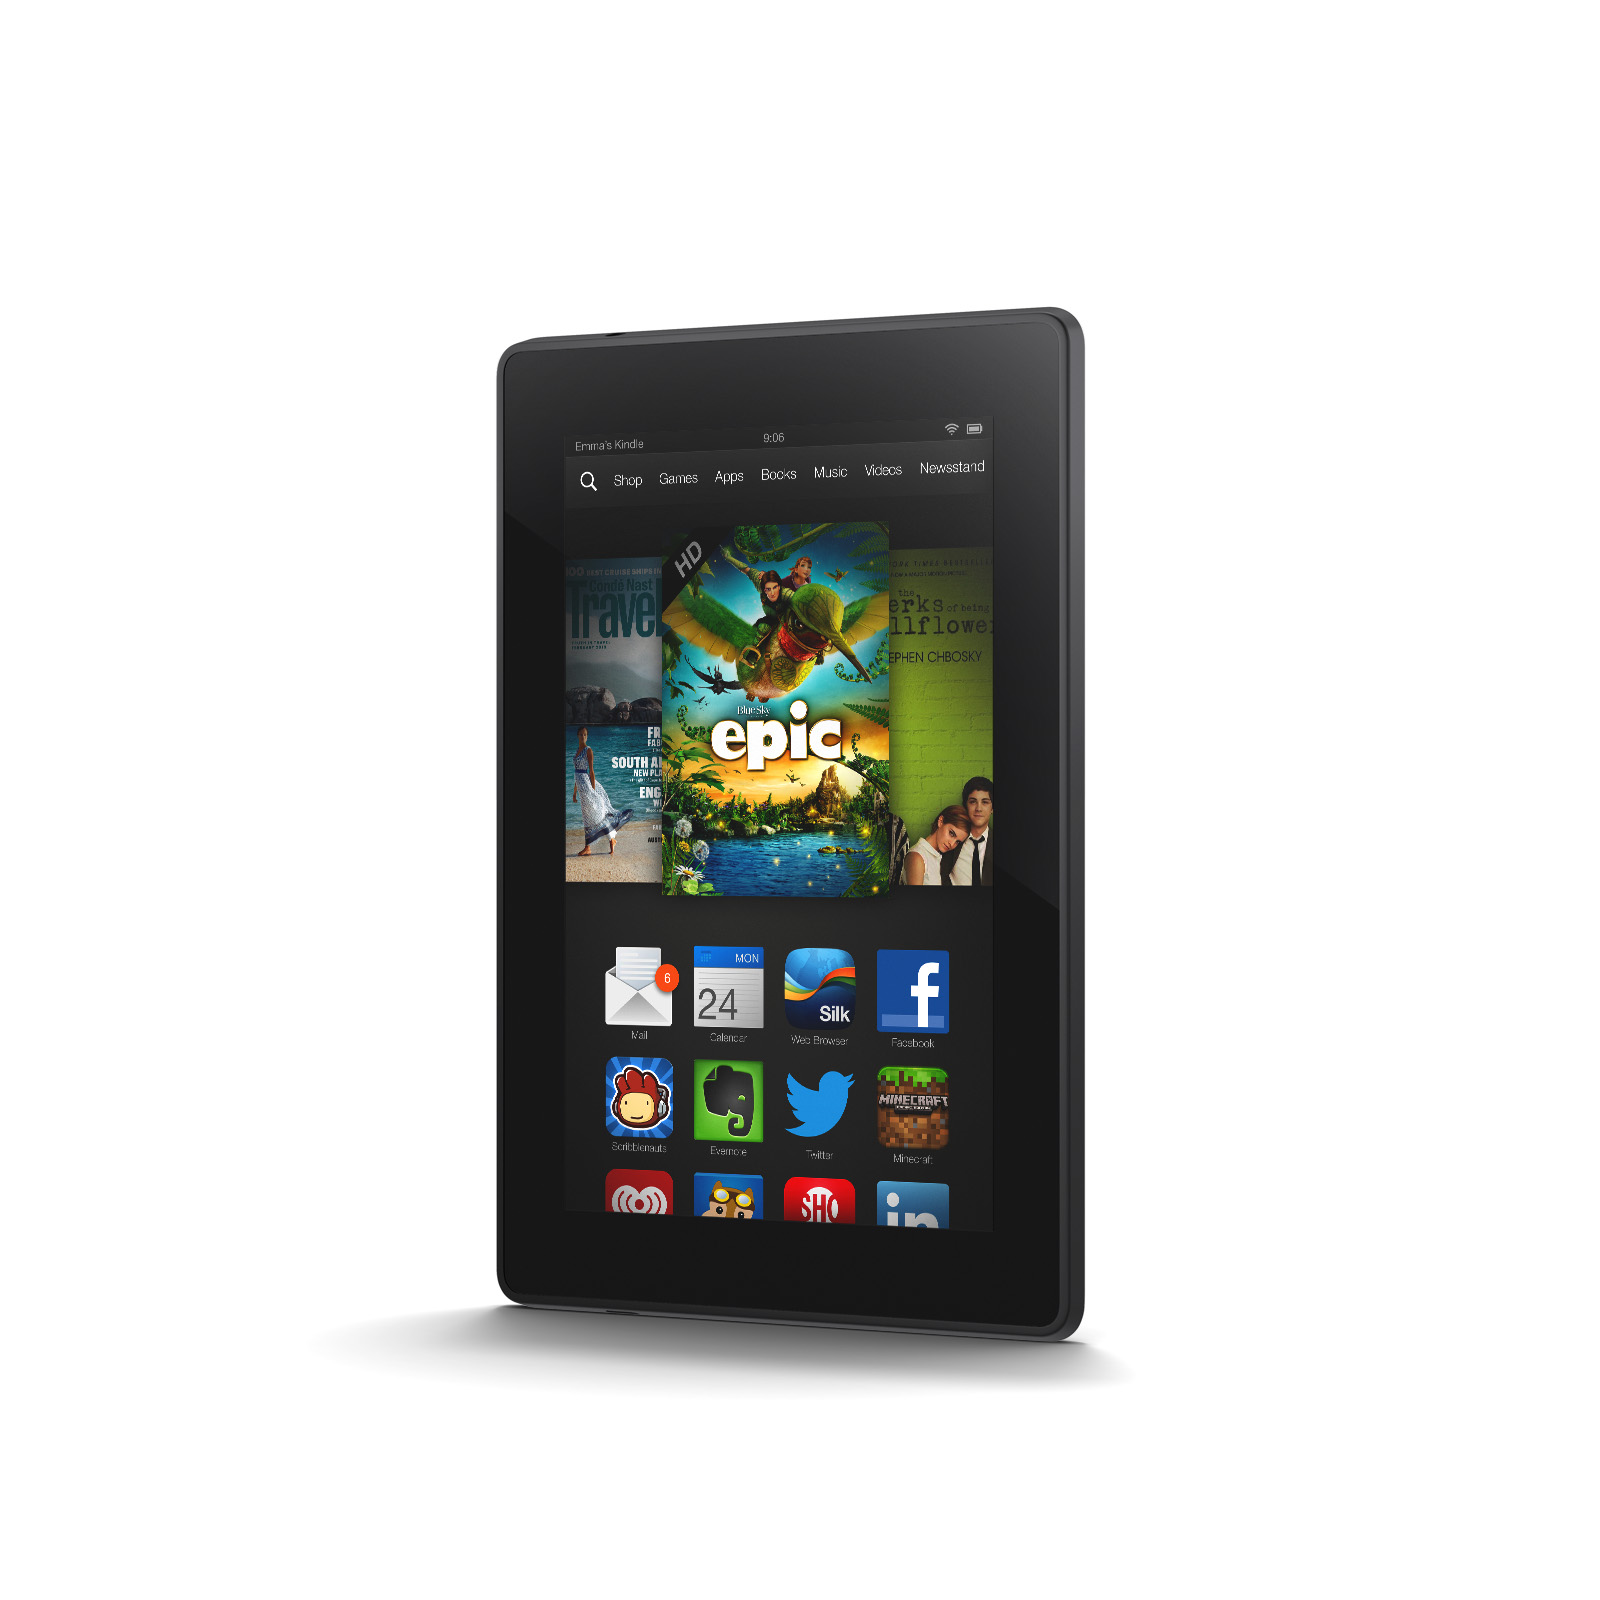 AMAZON Kindle Fire HD 7 in. - 8GB